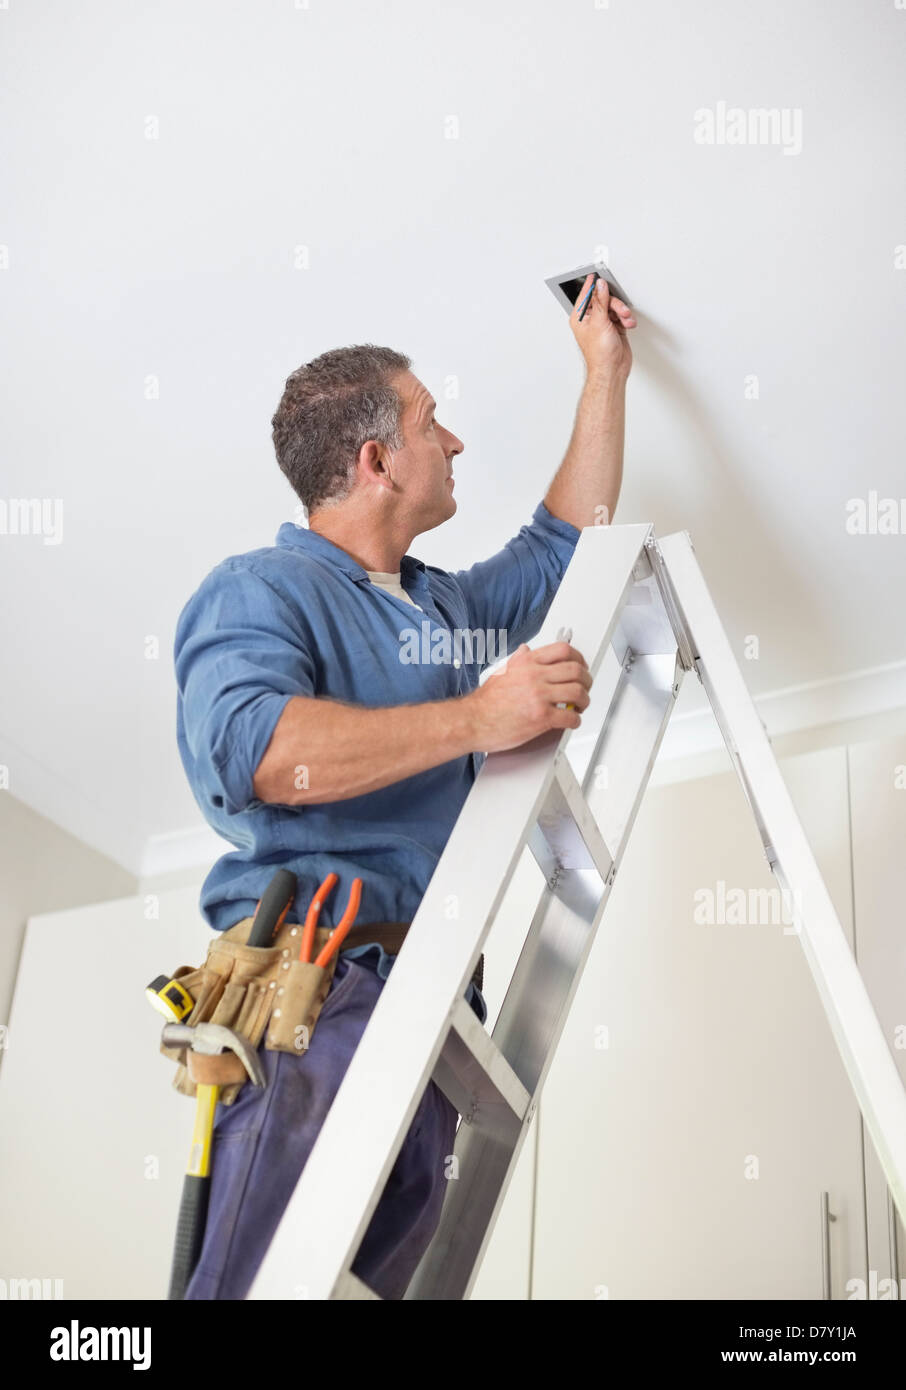 Electrician working on ceiling lights - Stock Image